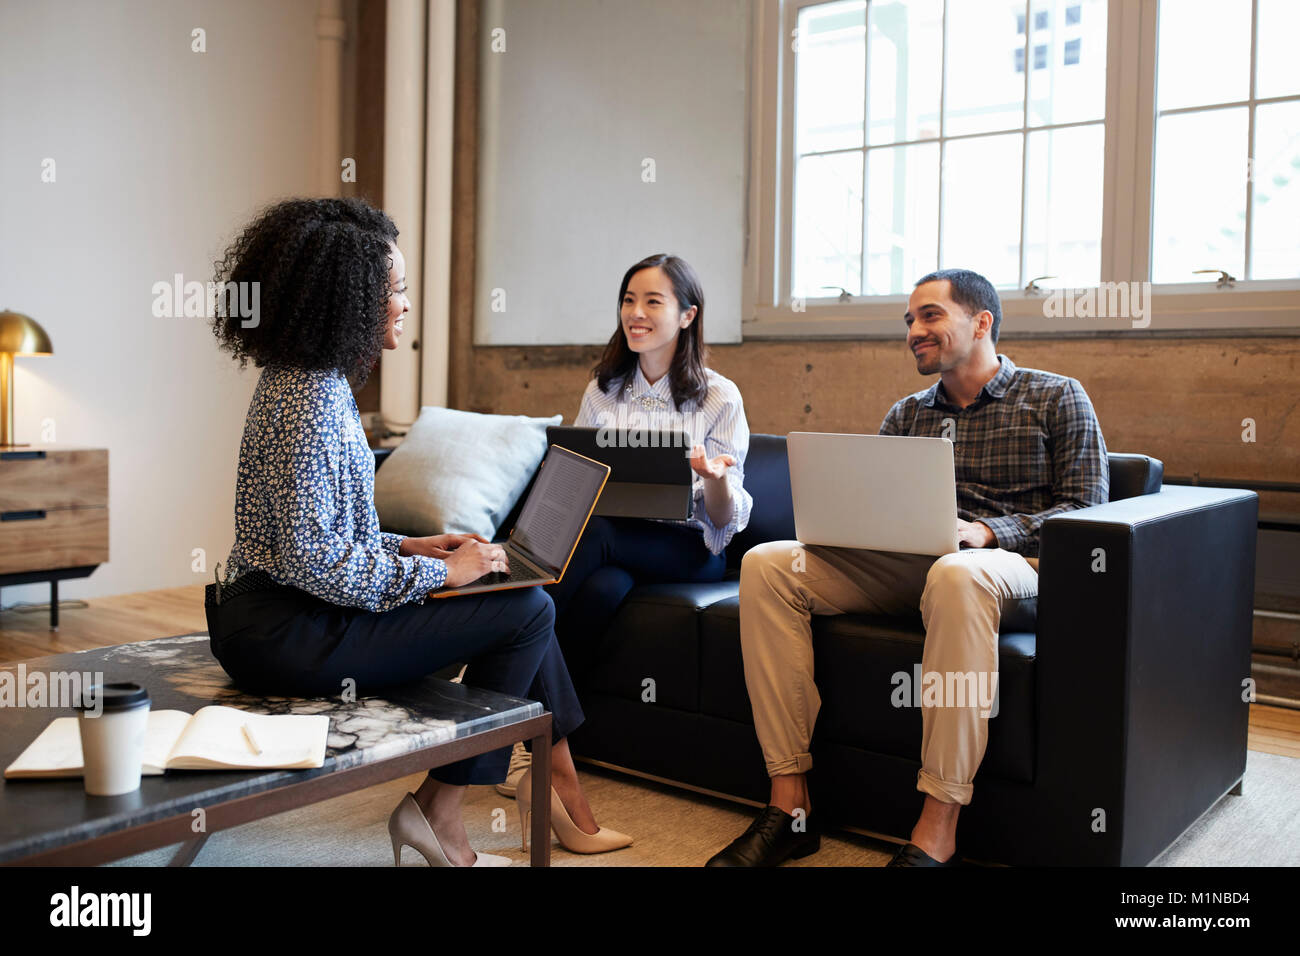 Smiling work colleagues with laptops at a casual meeting - Stock Image